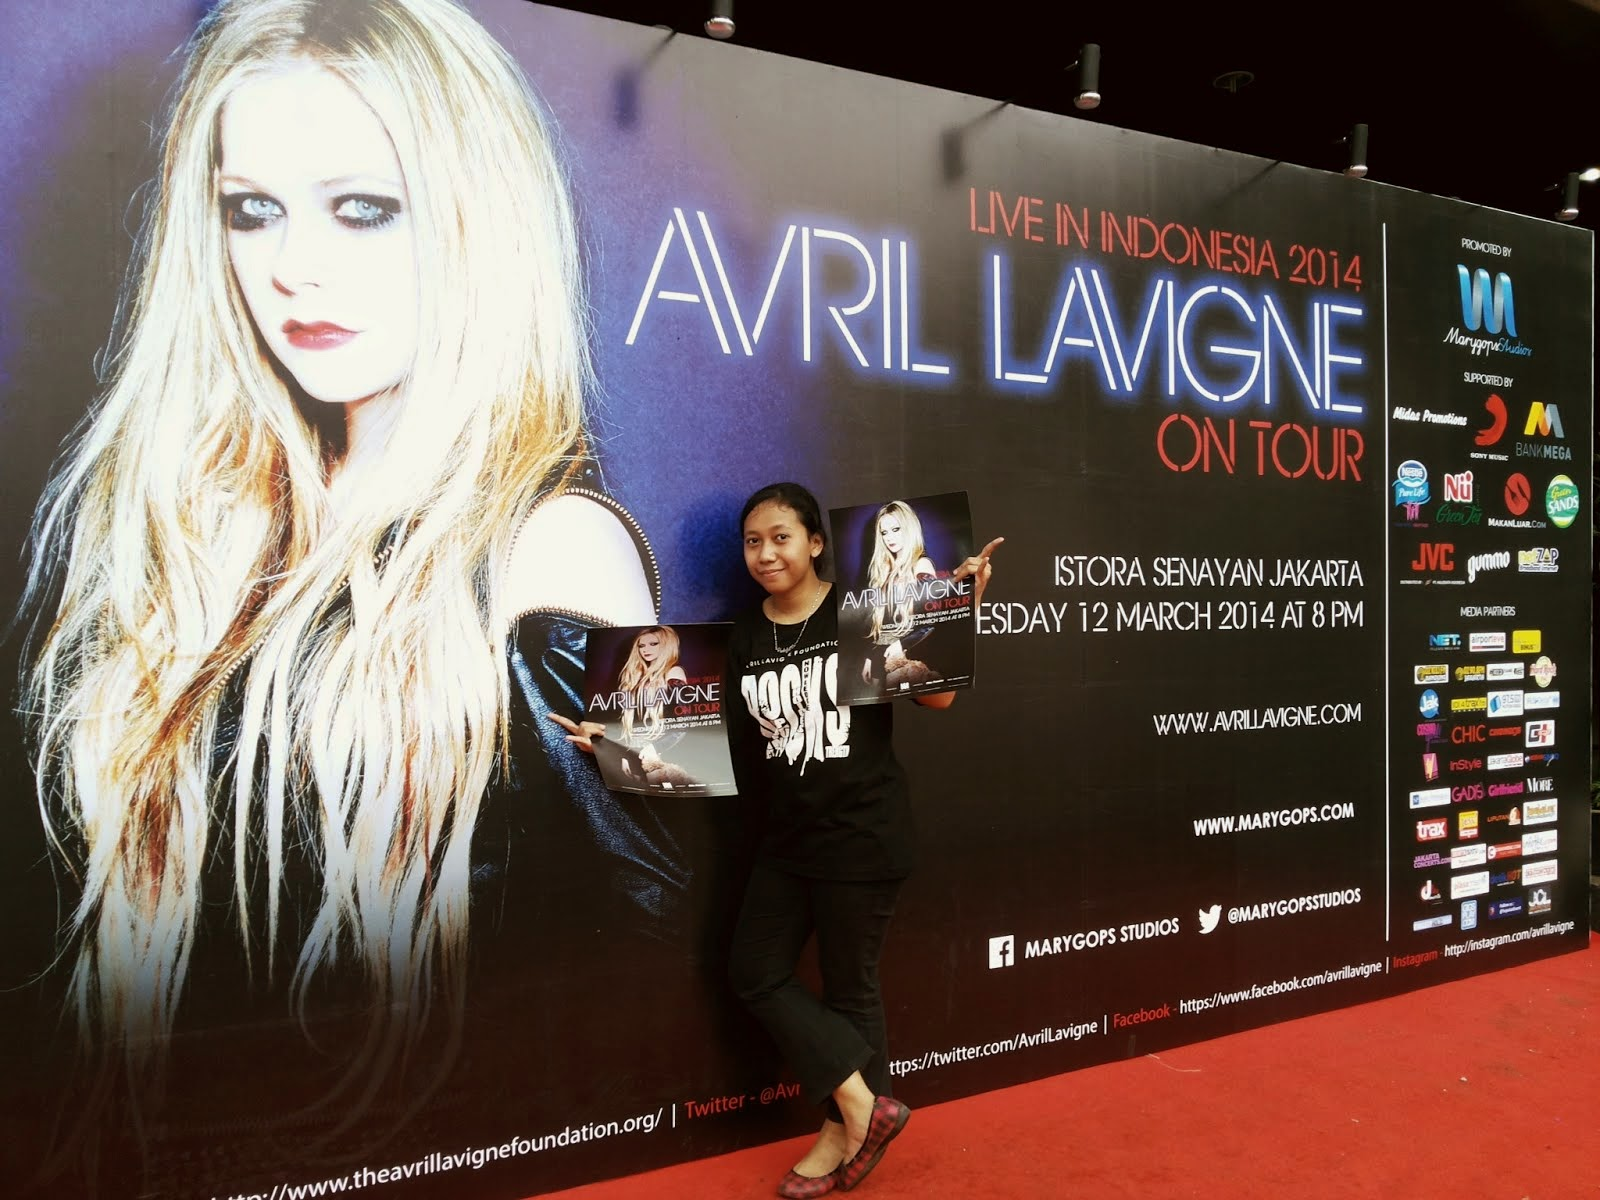 Me with Avril ;D